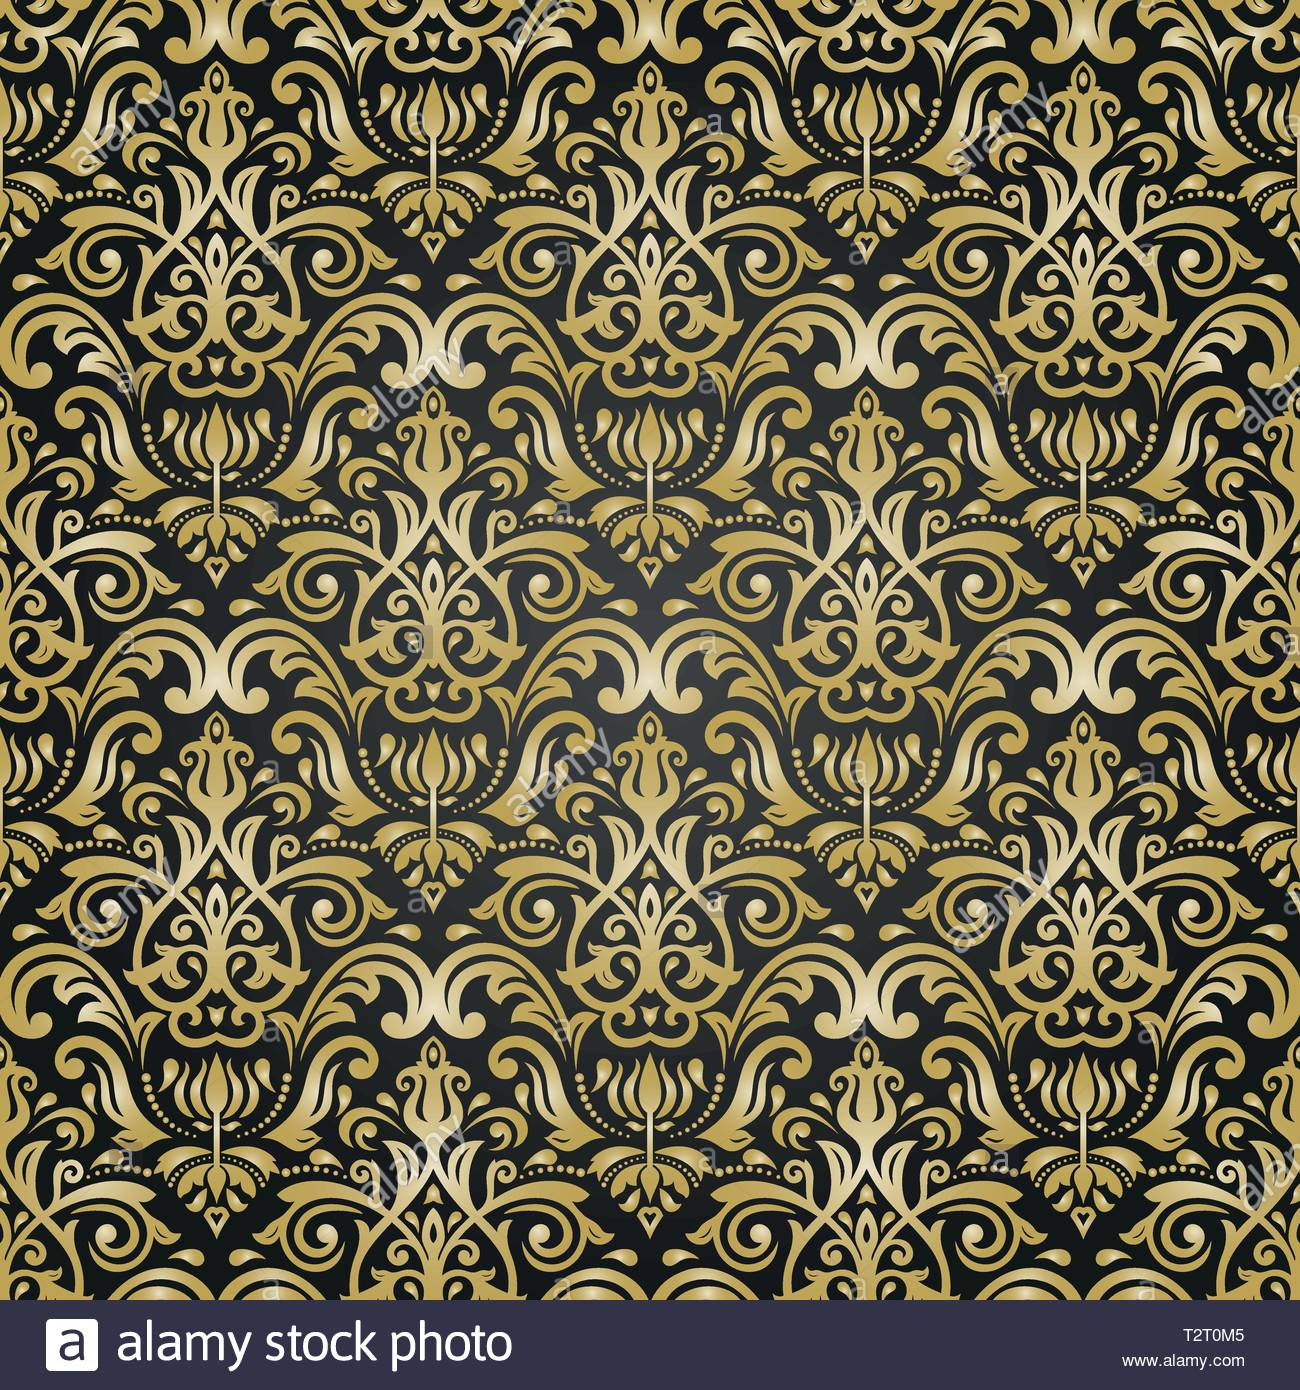 Classic seamless vector black and golden pattern Damask orient 1300x1390